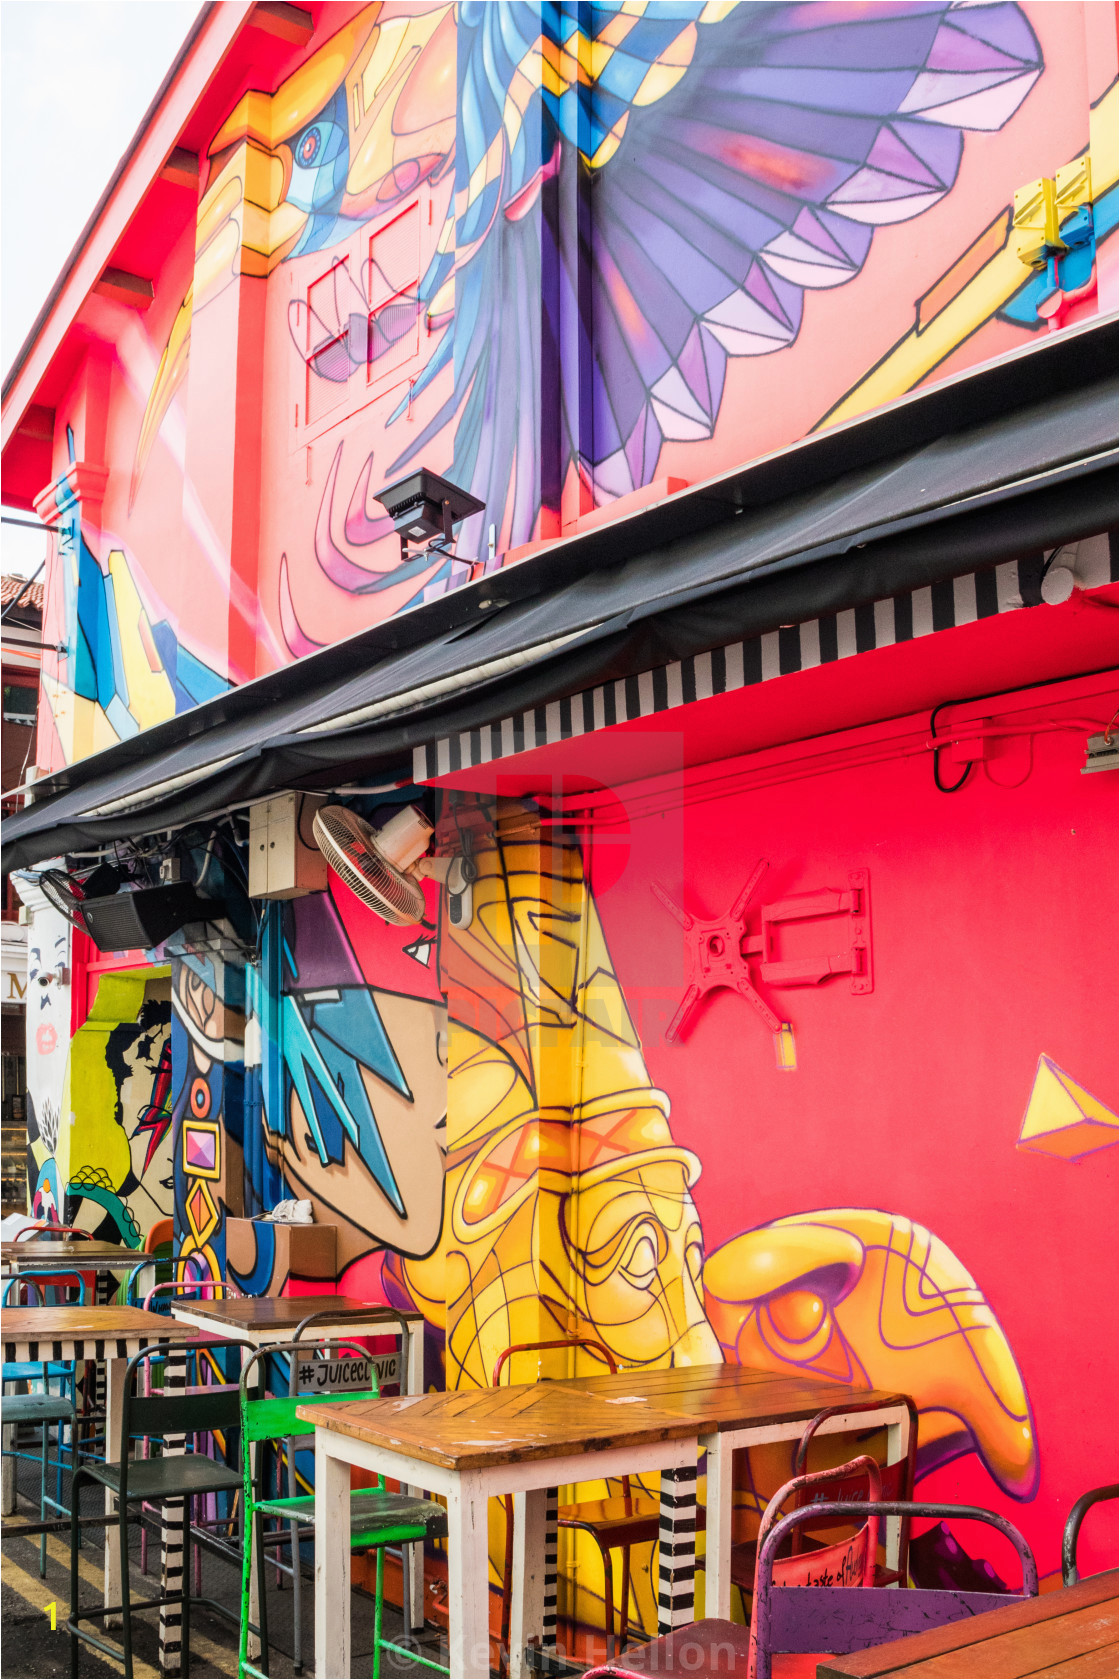 Haji Lane Wall Murals Haji Lane Wall Murals License or Print for £6 20